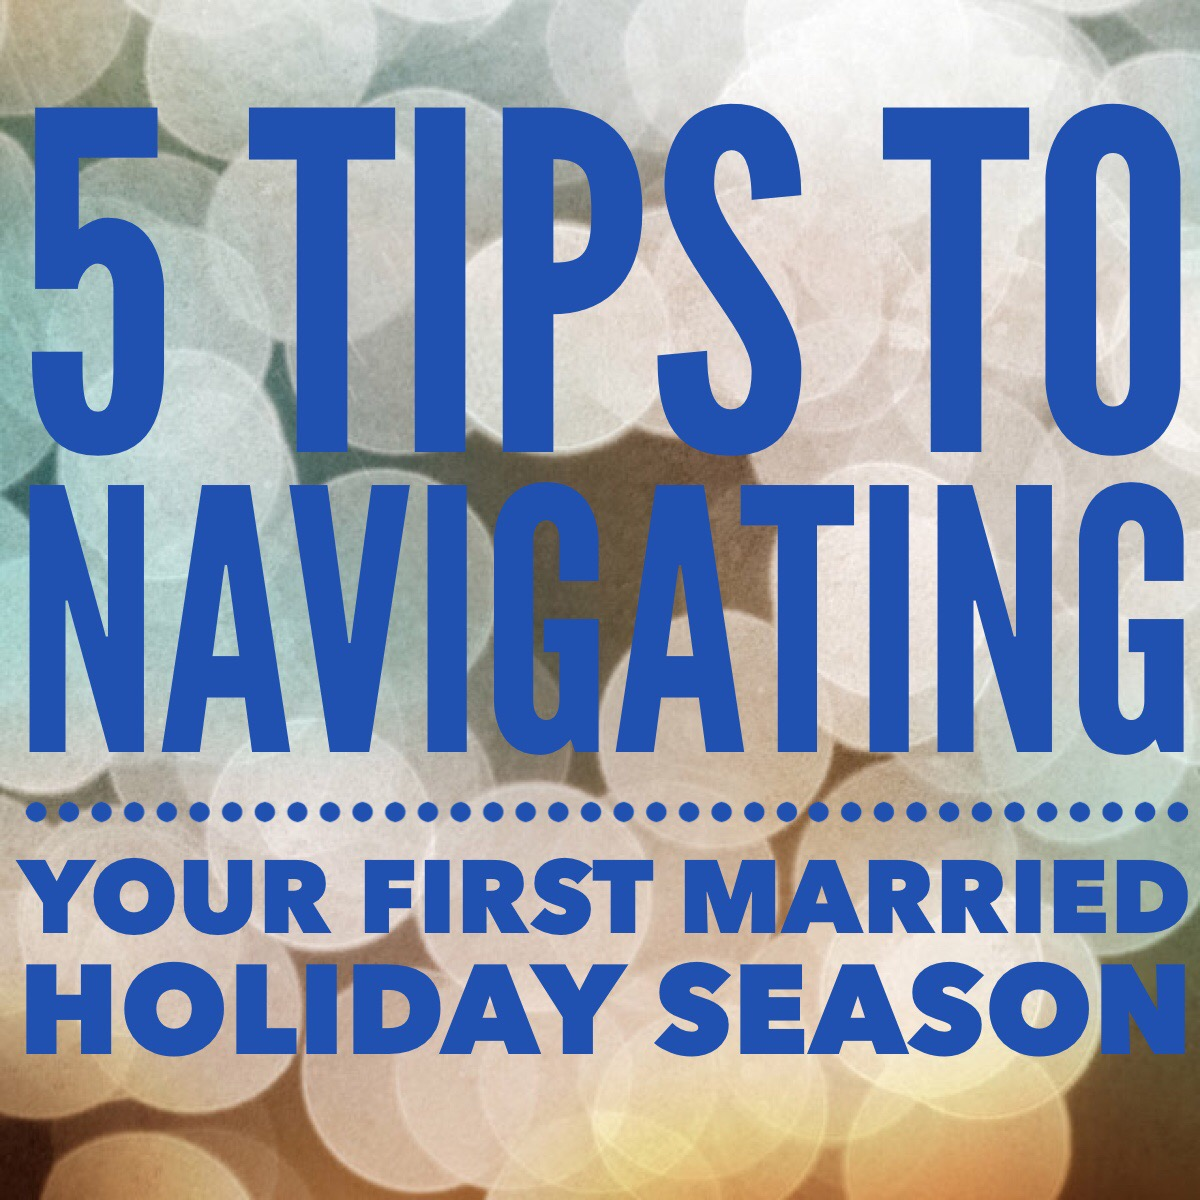 5 tips for navigating your first married holiday season